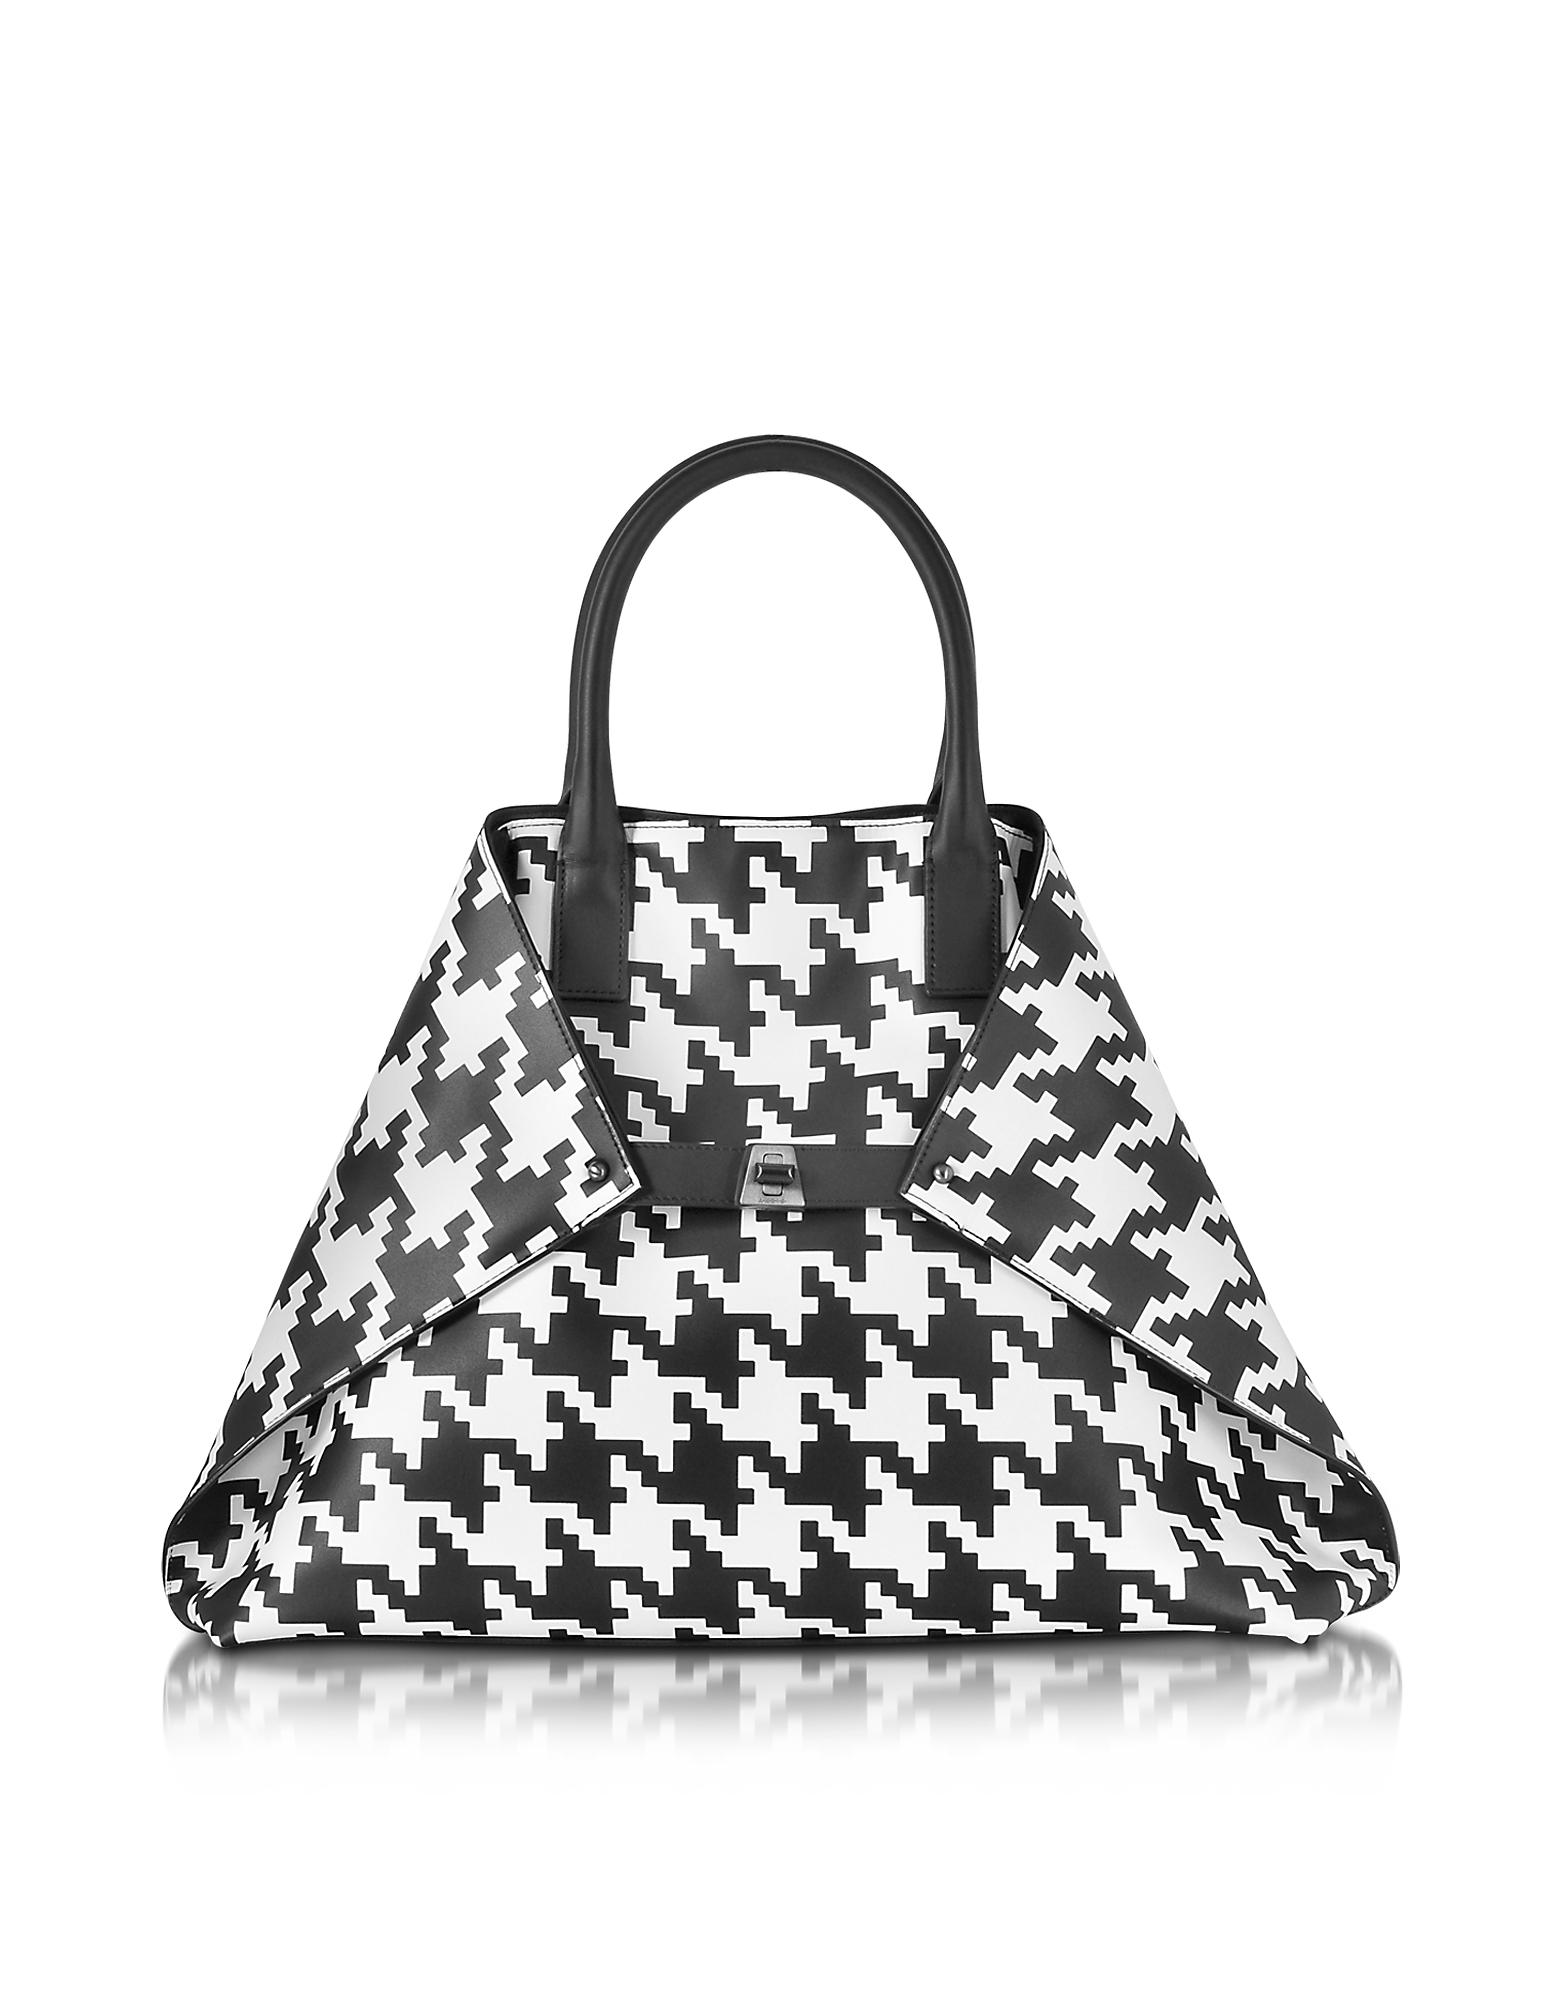 Akris Ai Medium Black And White Pied De Poule Printed Leather Tote Bag In Black